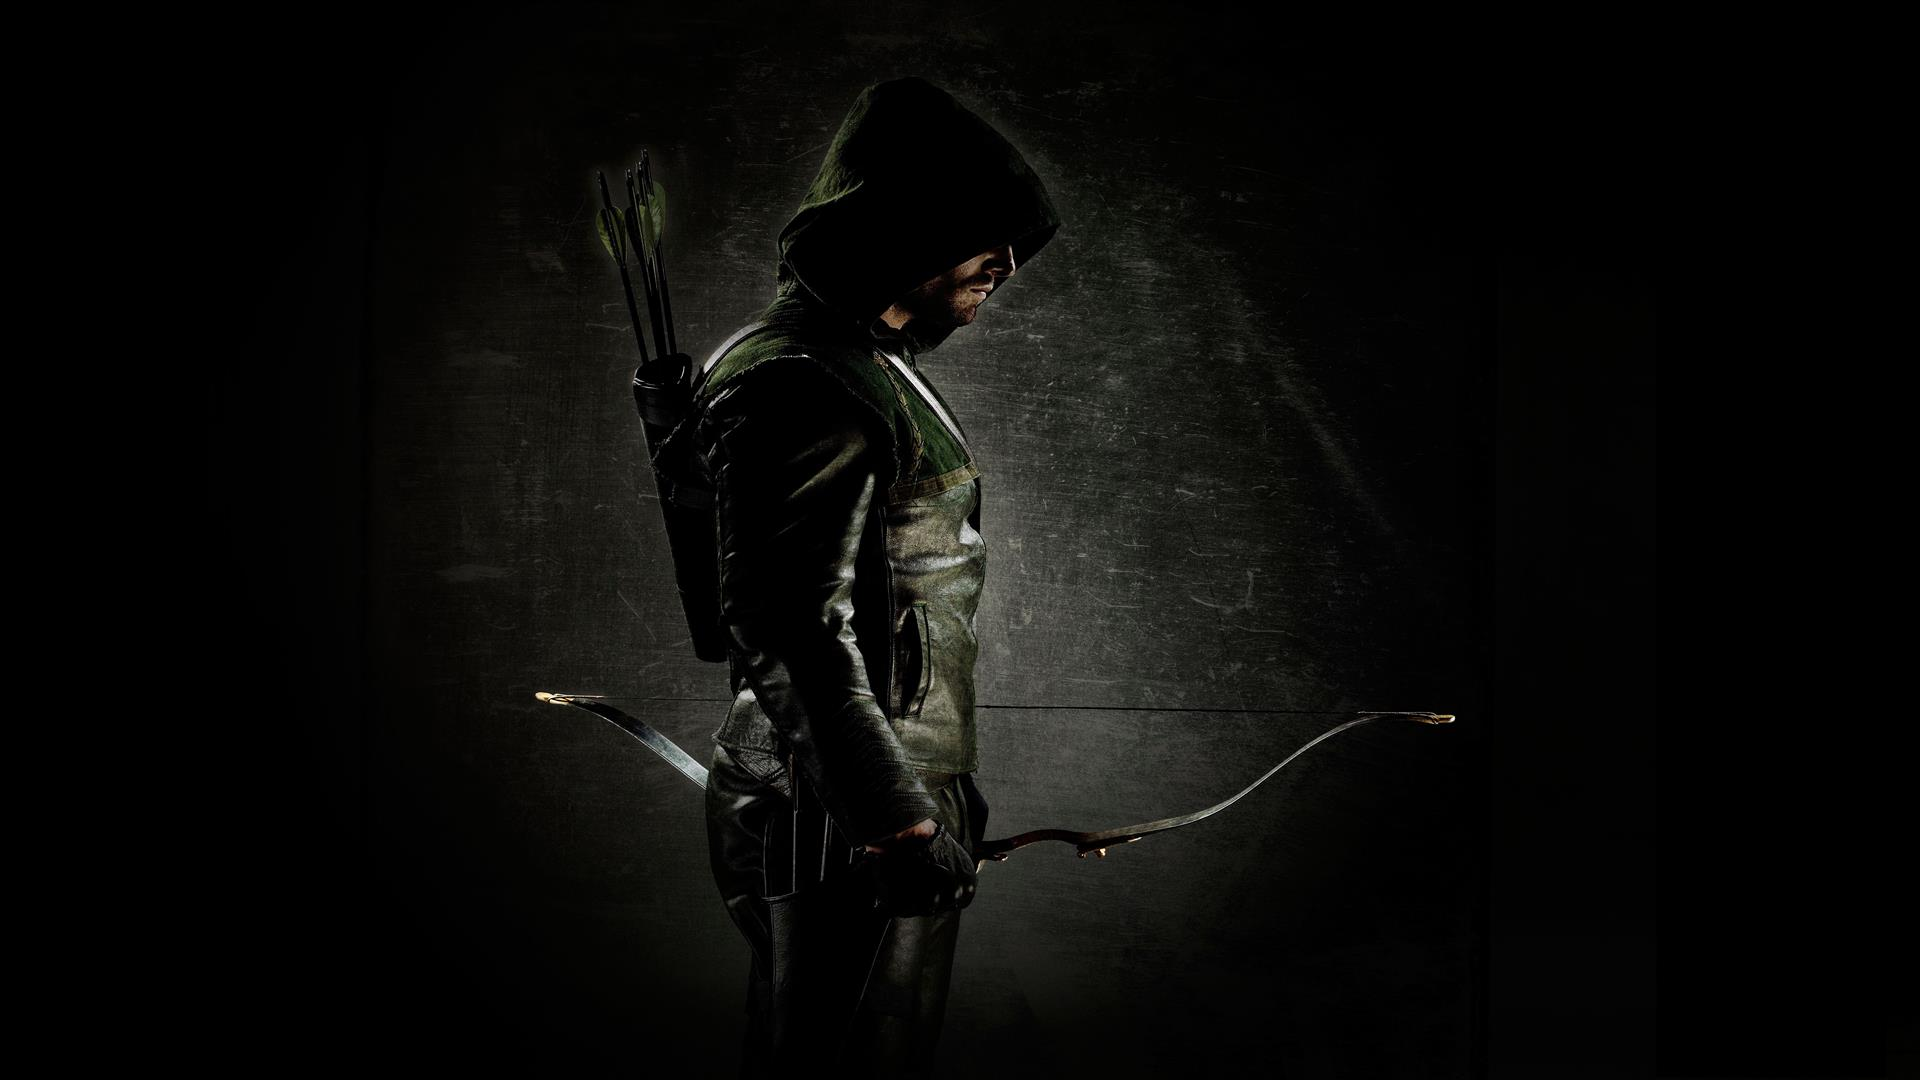 1920x1080 Green Arrow Fictional Superhero HD Wallpaper